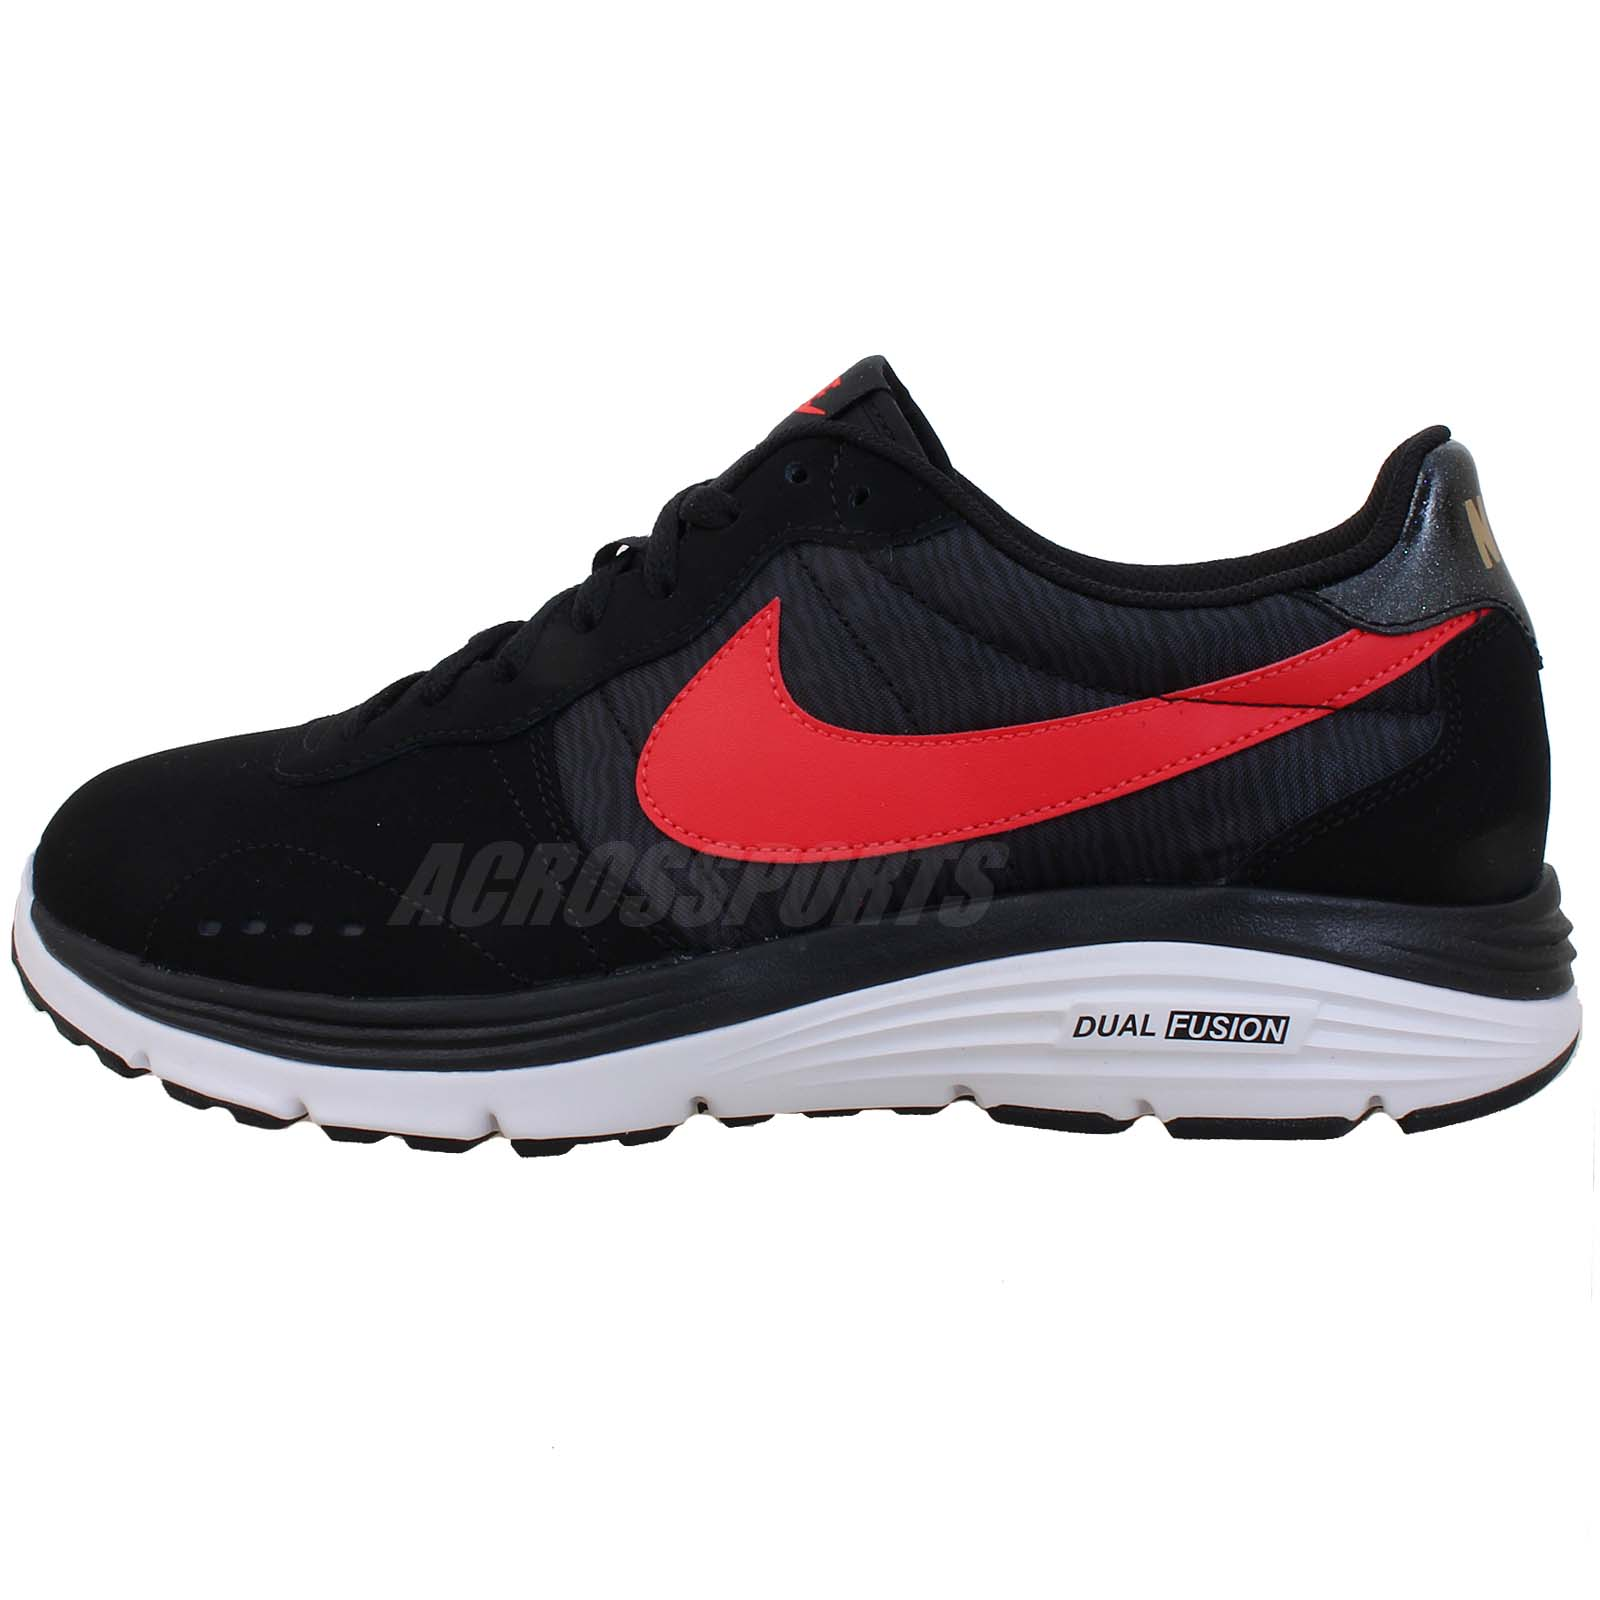 6c2dc8ff1405 Nike Dual Fusion Retro Black Running Shoes